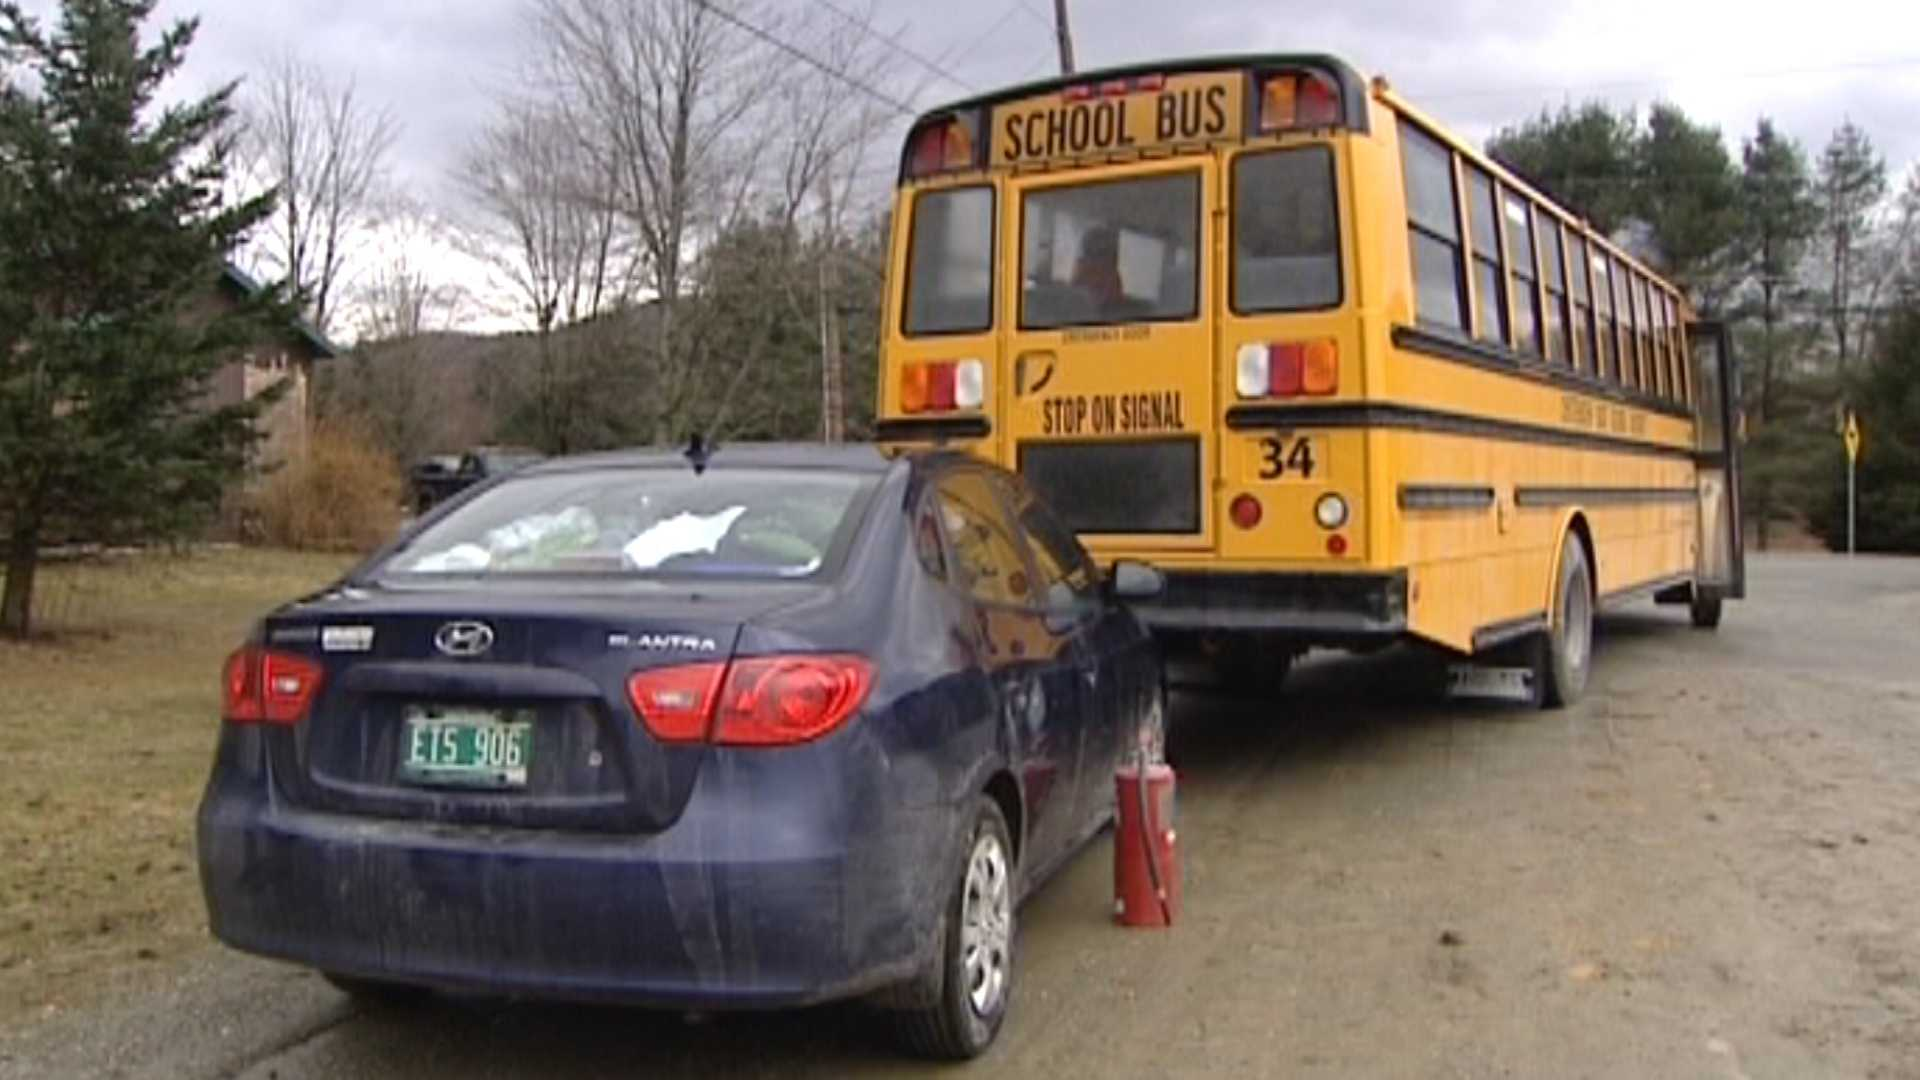 04-01-13 Police: Bus rolls into parked car - img